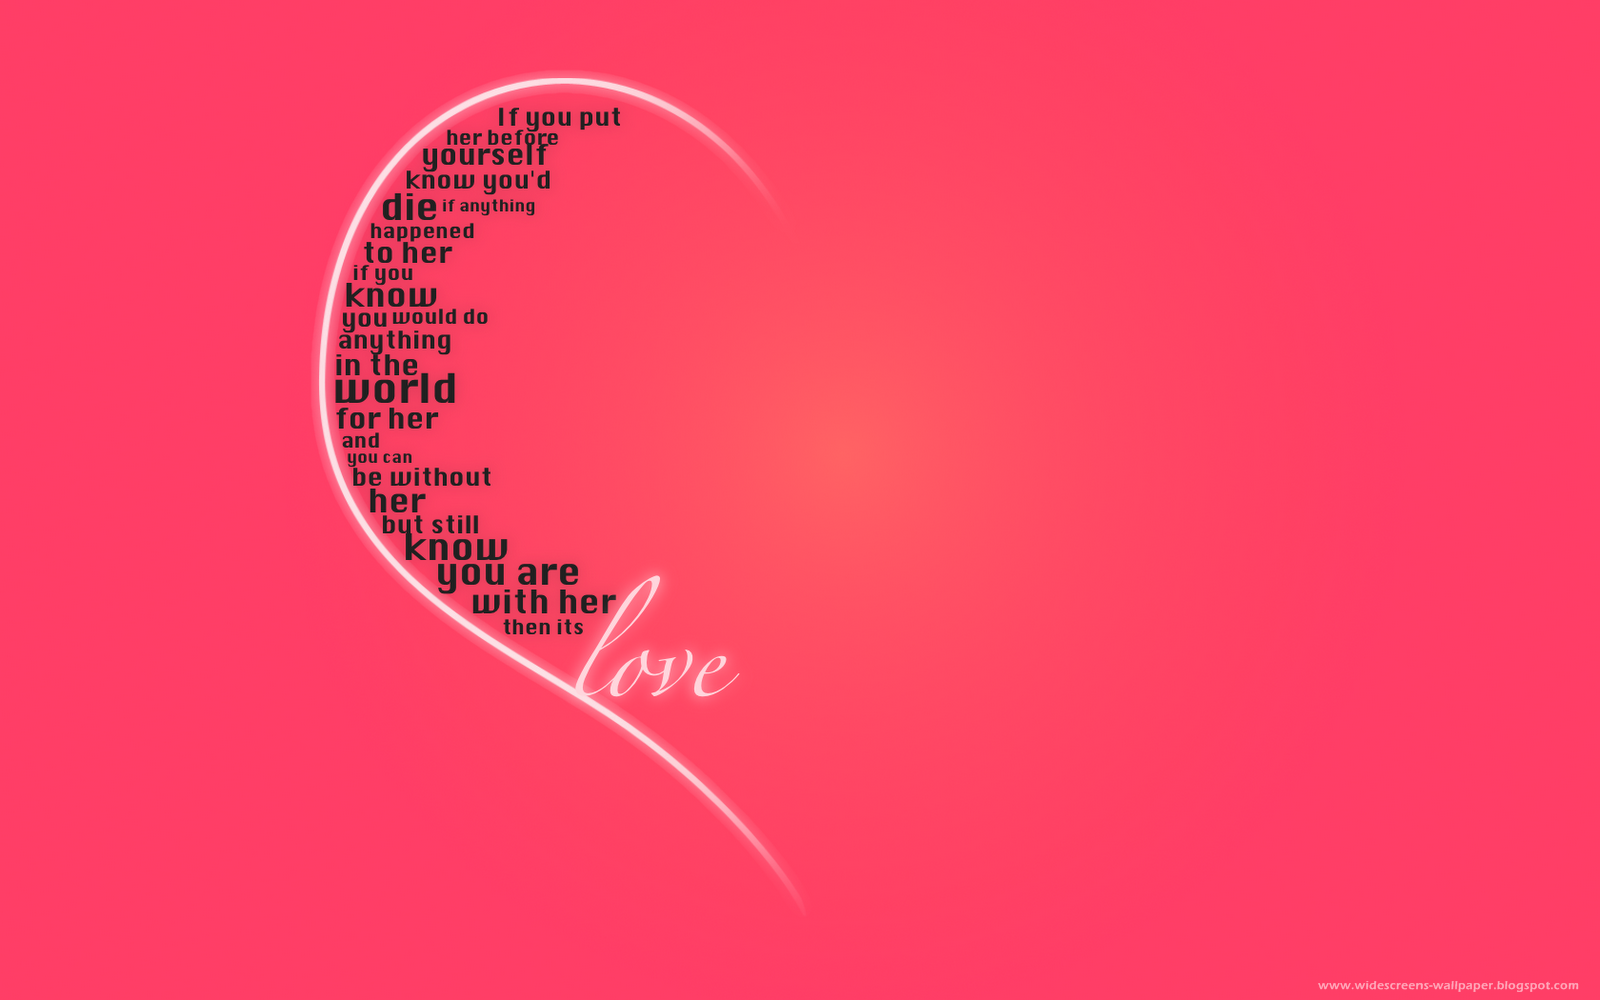 Love Wallpaper In Words : Wallpaper collection For Your computer and Mobile Phones: New Romantic Love Words And Quotations ...